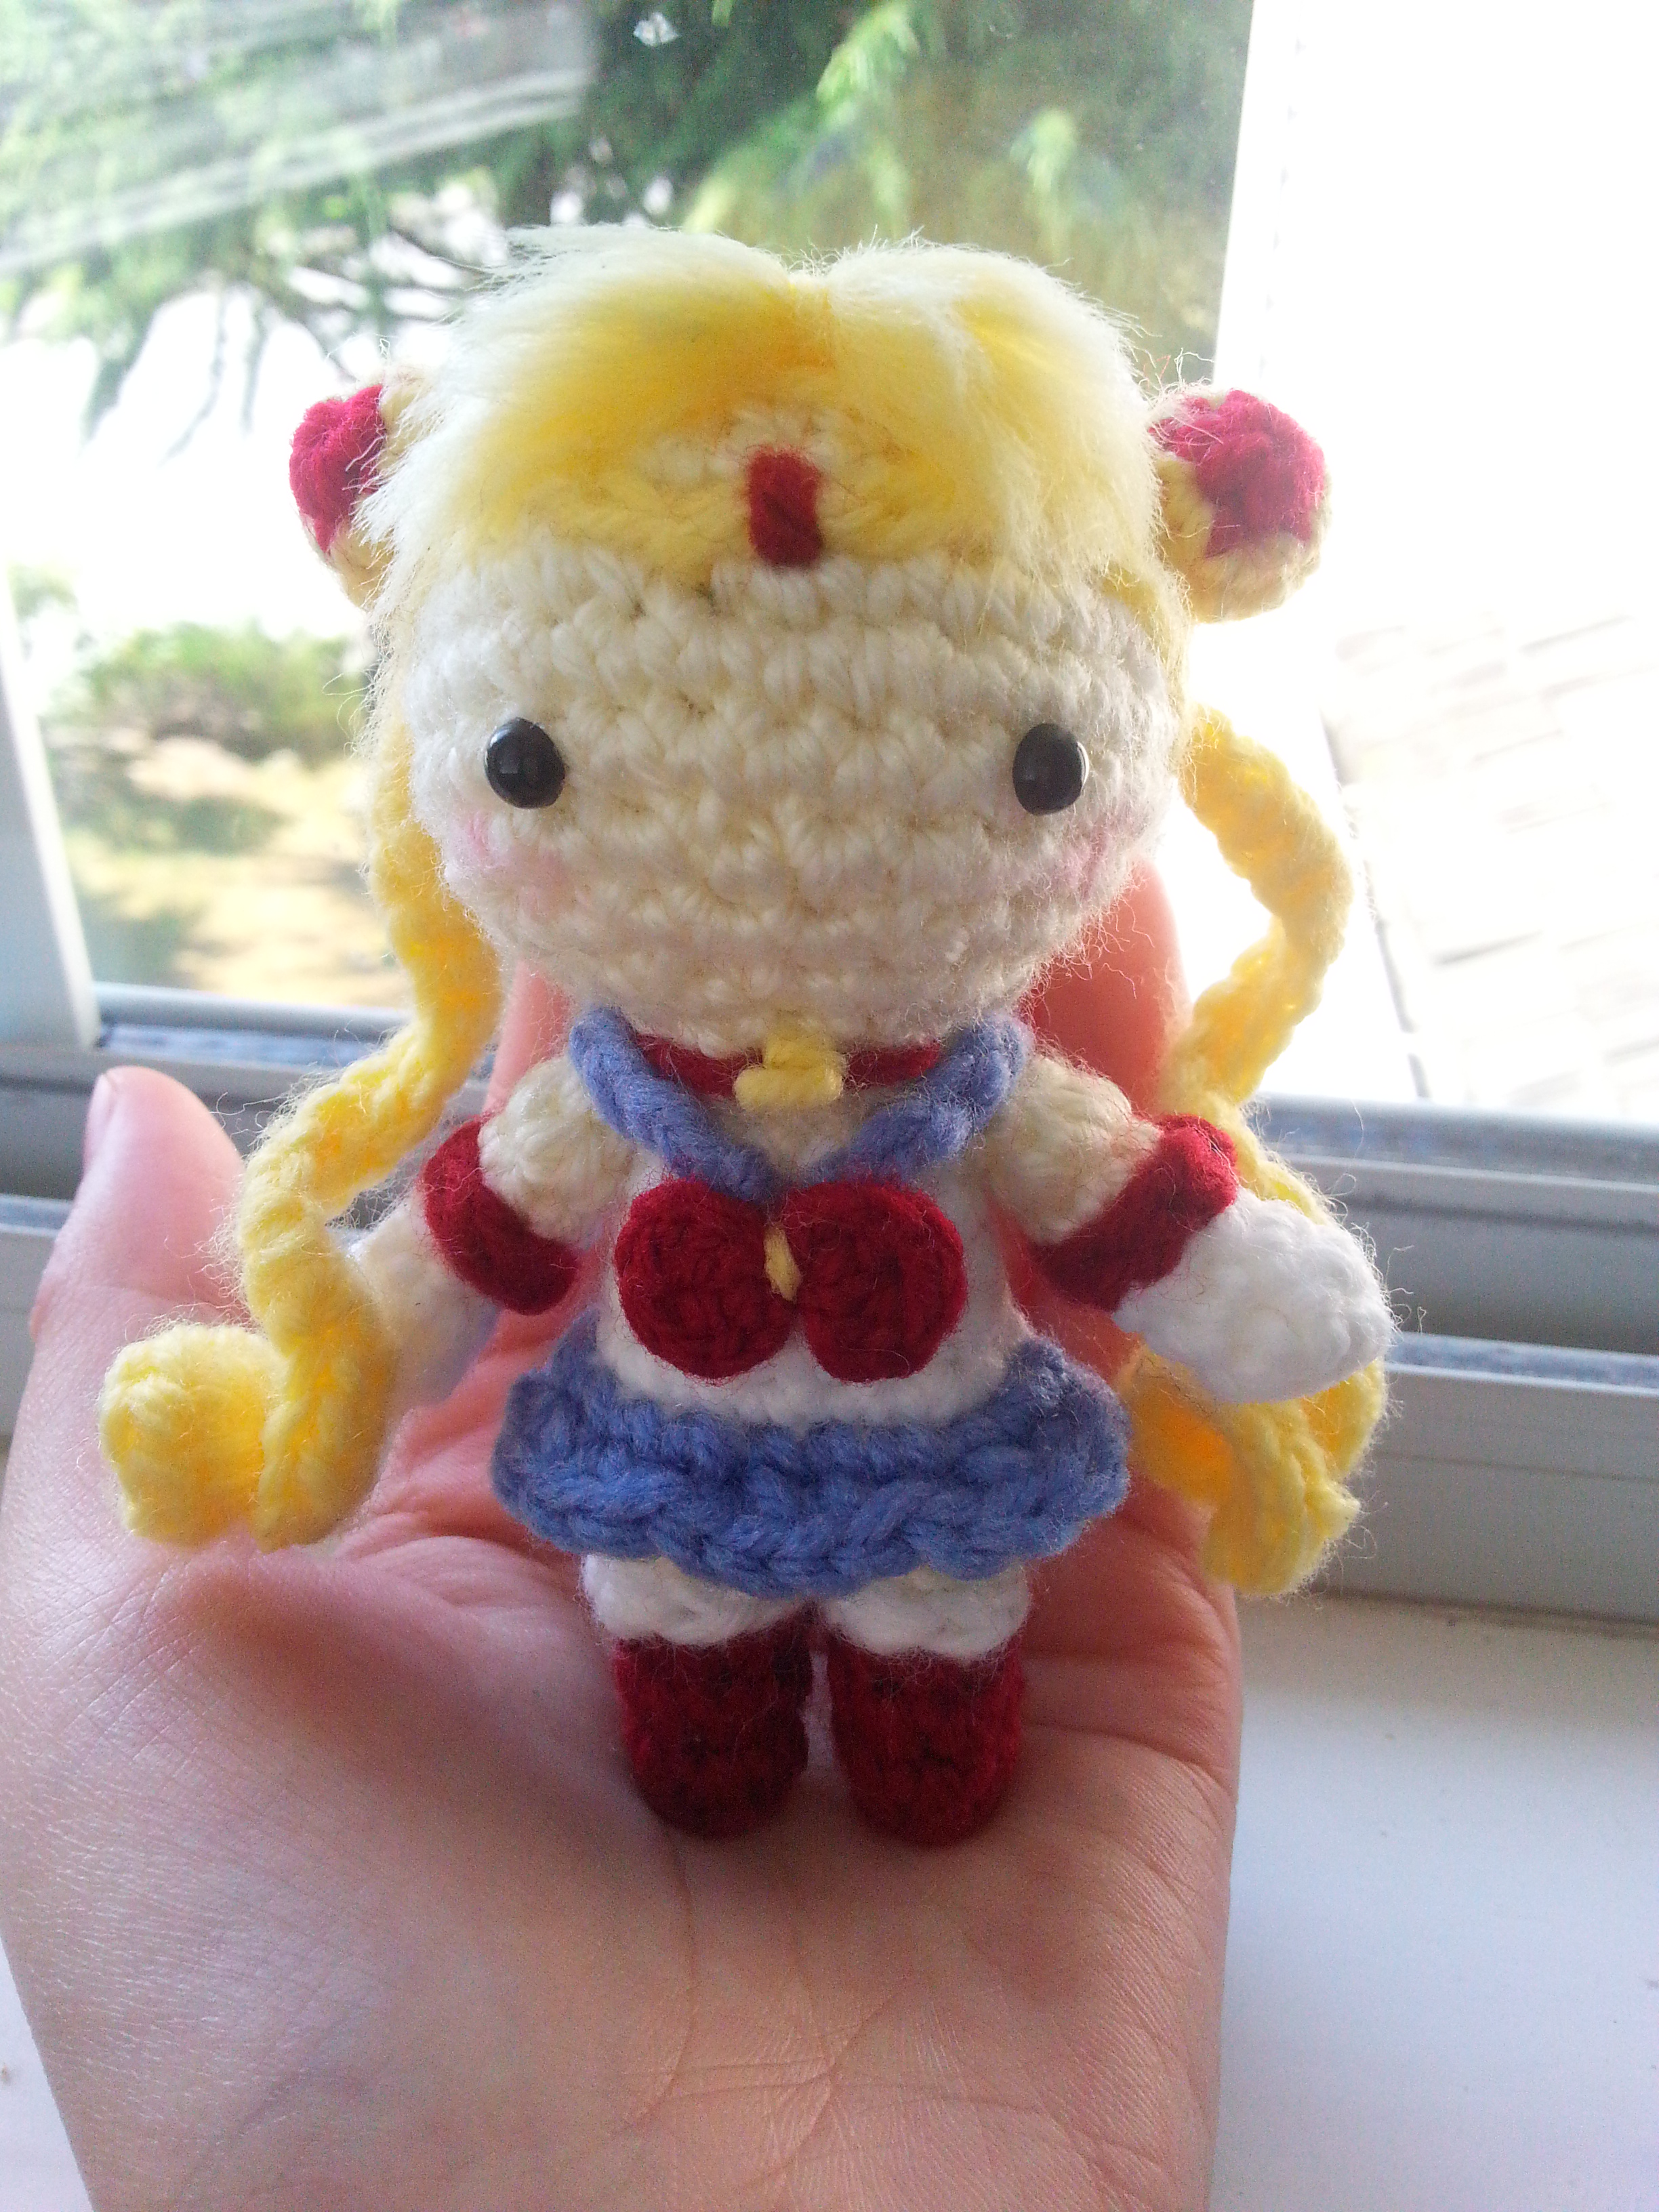 Amigurumi Sailor Moon Luna : sailor moon amigurumi ? aringurumi ? Online Store Powered ...